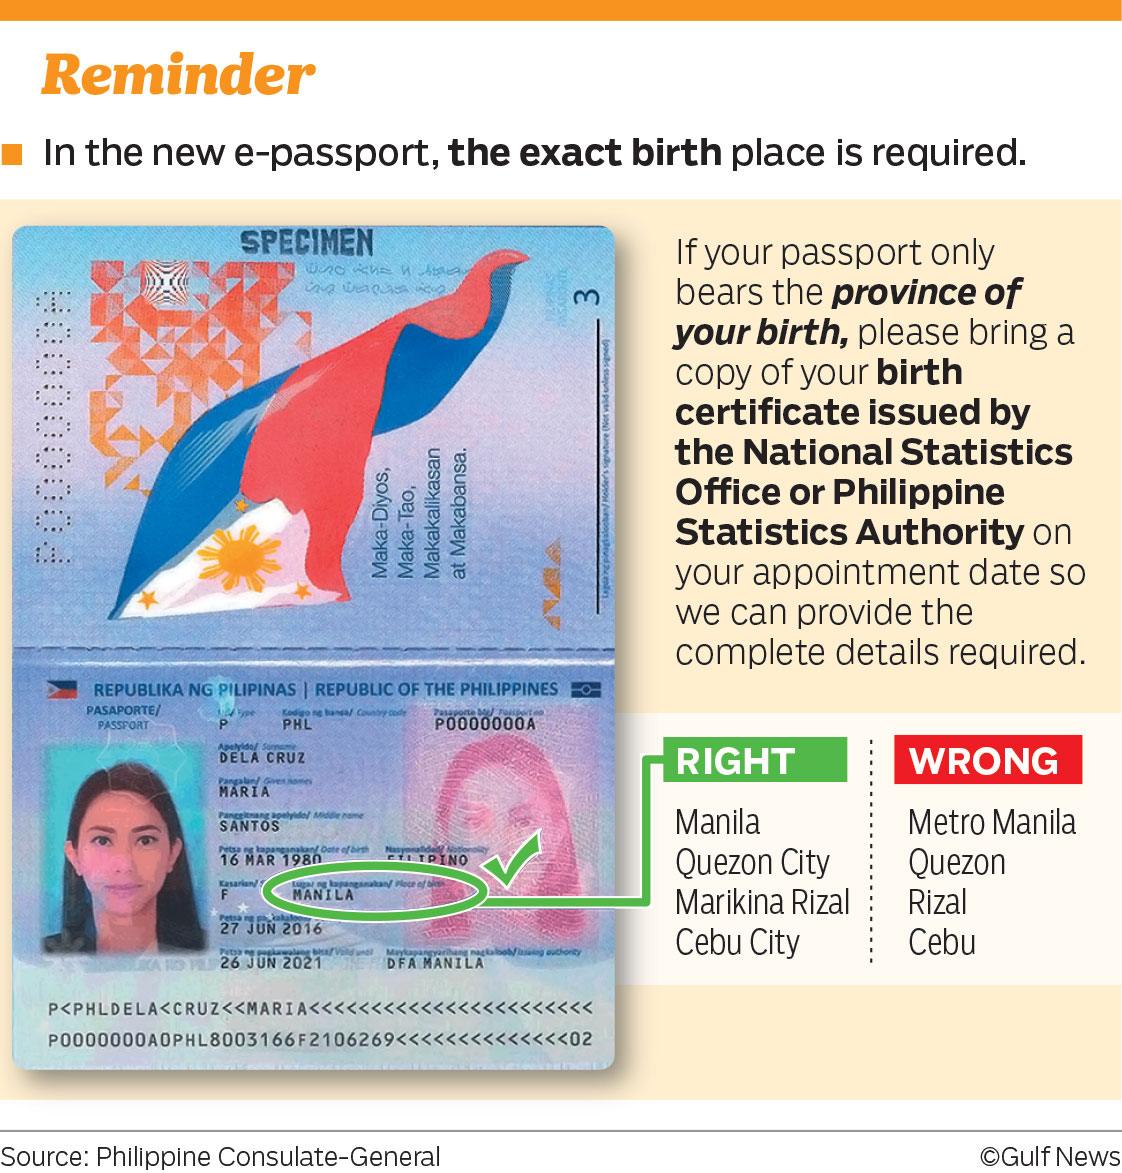 Passport renewal are now required to bring a copy of their birth if the application does not have a scanned copy of the birth certificate the printing gets suspended in manila so we do not accept or process applicants aiddatafo Gallery